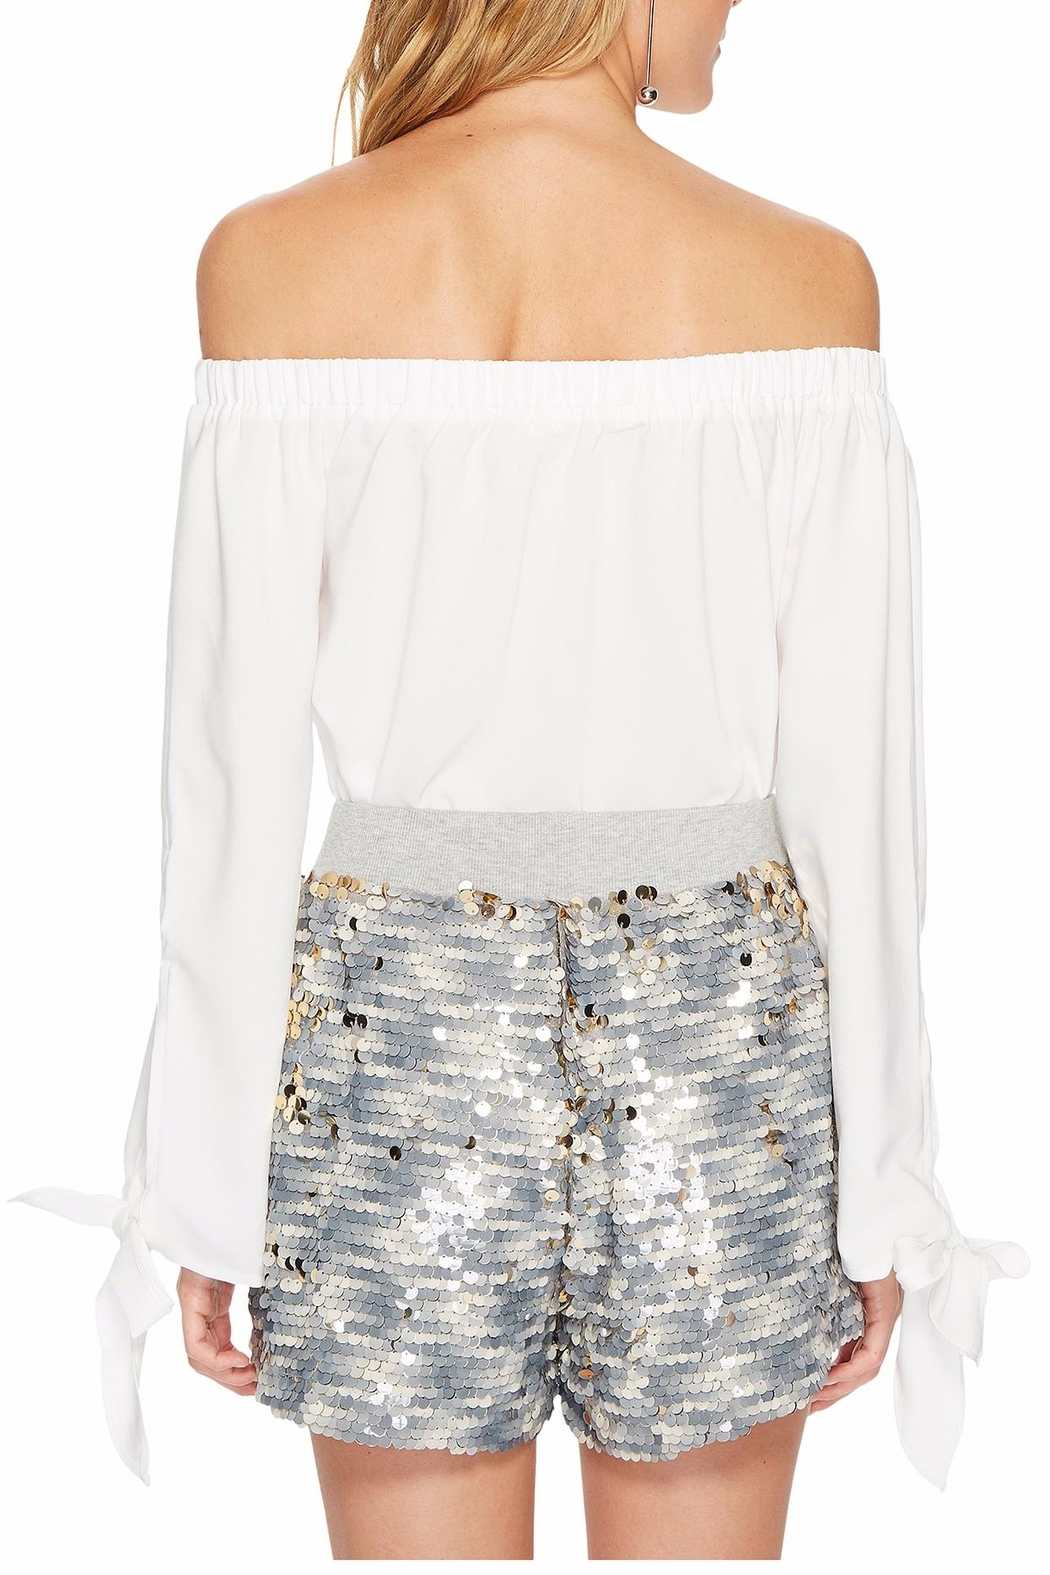 Bishop + Young Avery Bare Shoulder Top - Side Cropped Image